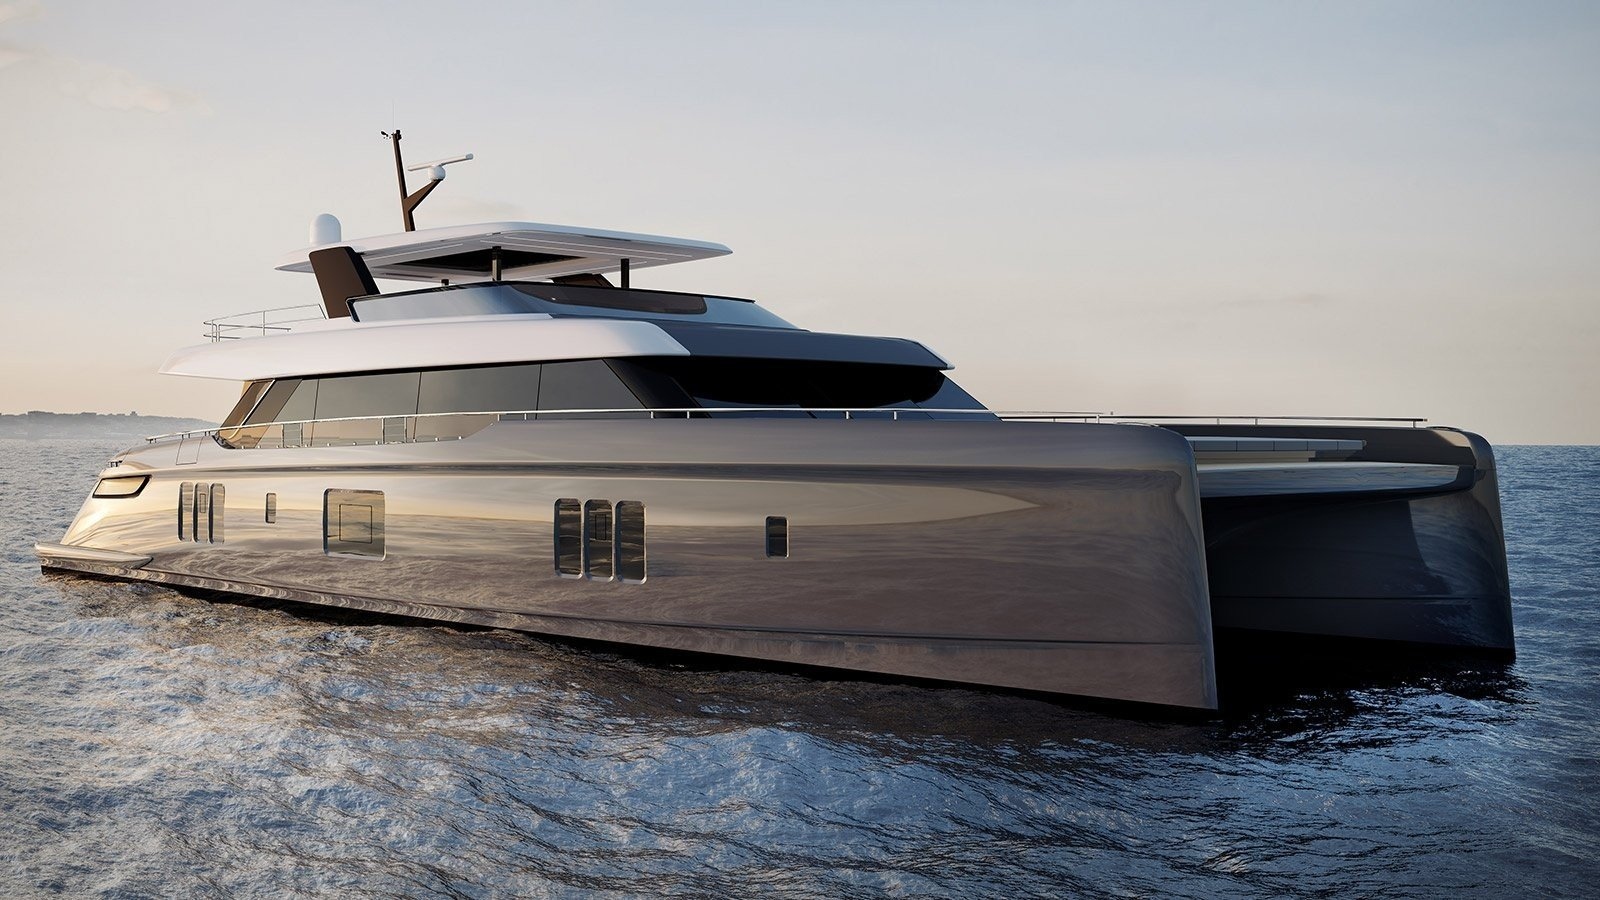 Rafael Nadal splashes out on a new customised yacht with its own jet